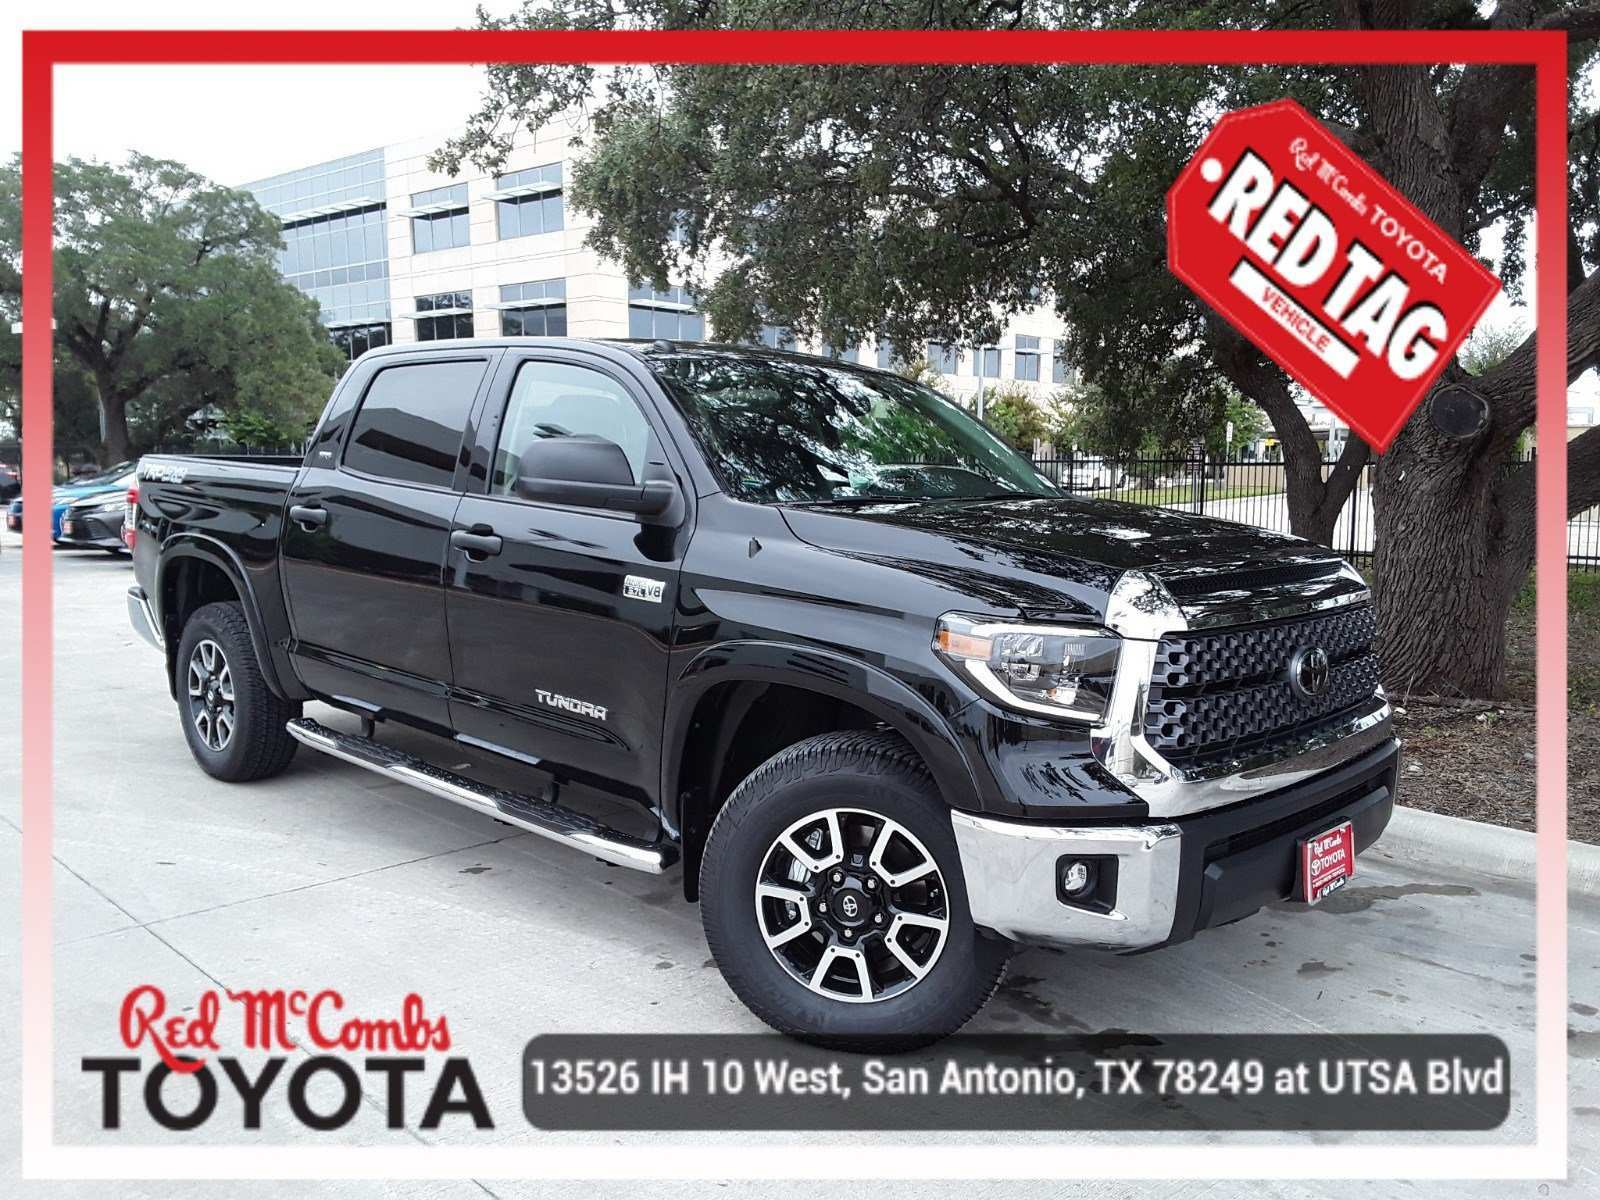 53 All New 2019 Toyota Tundra Price Design And Review